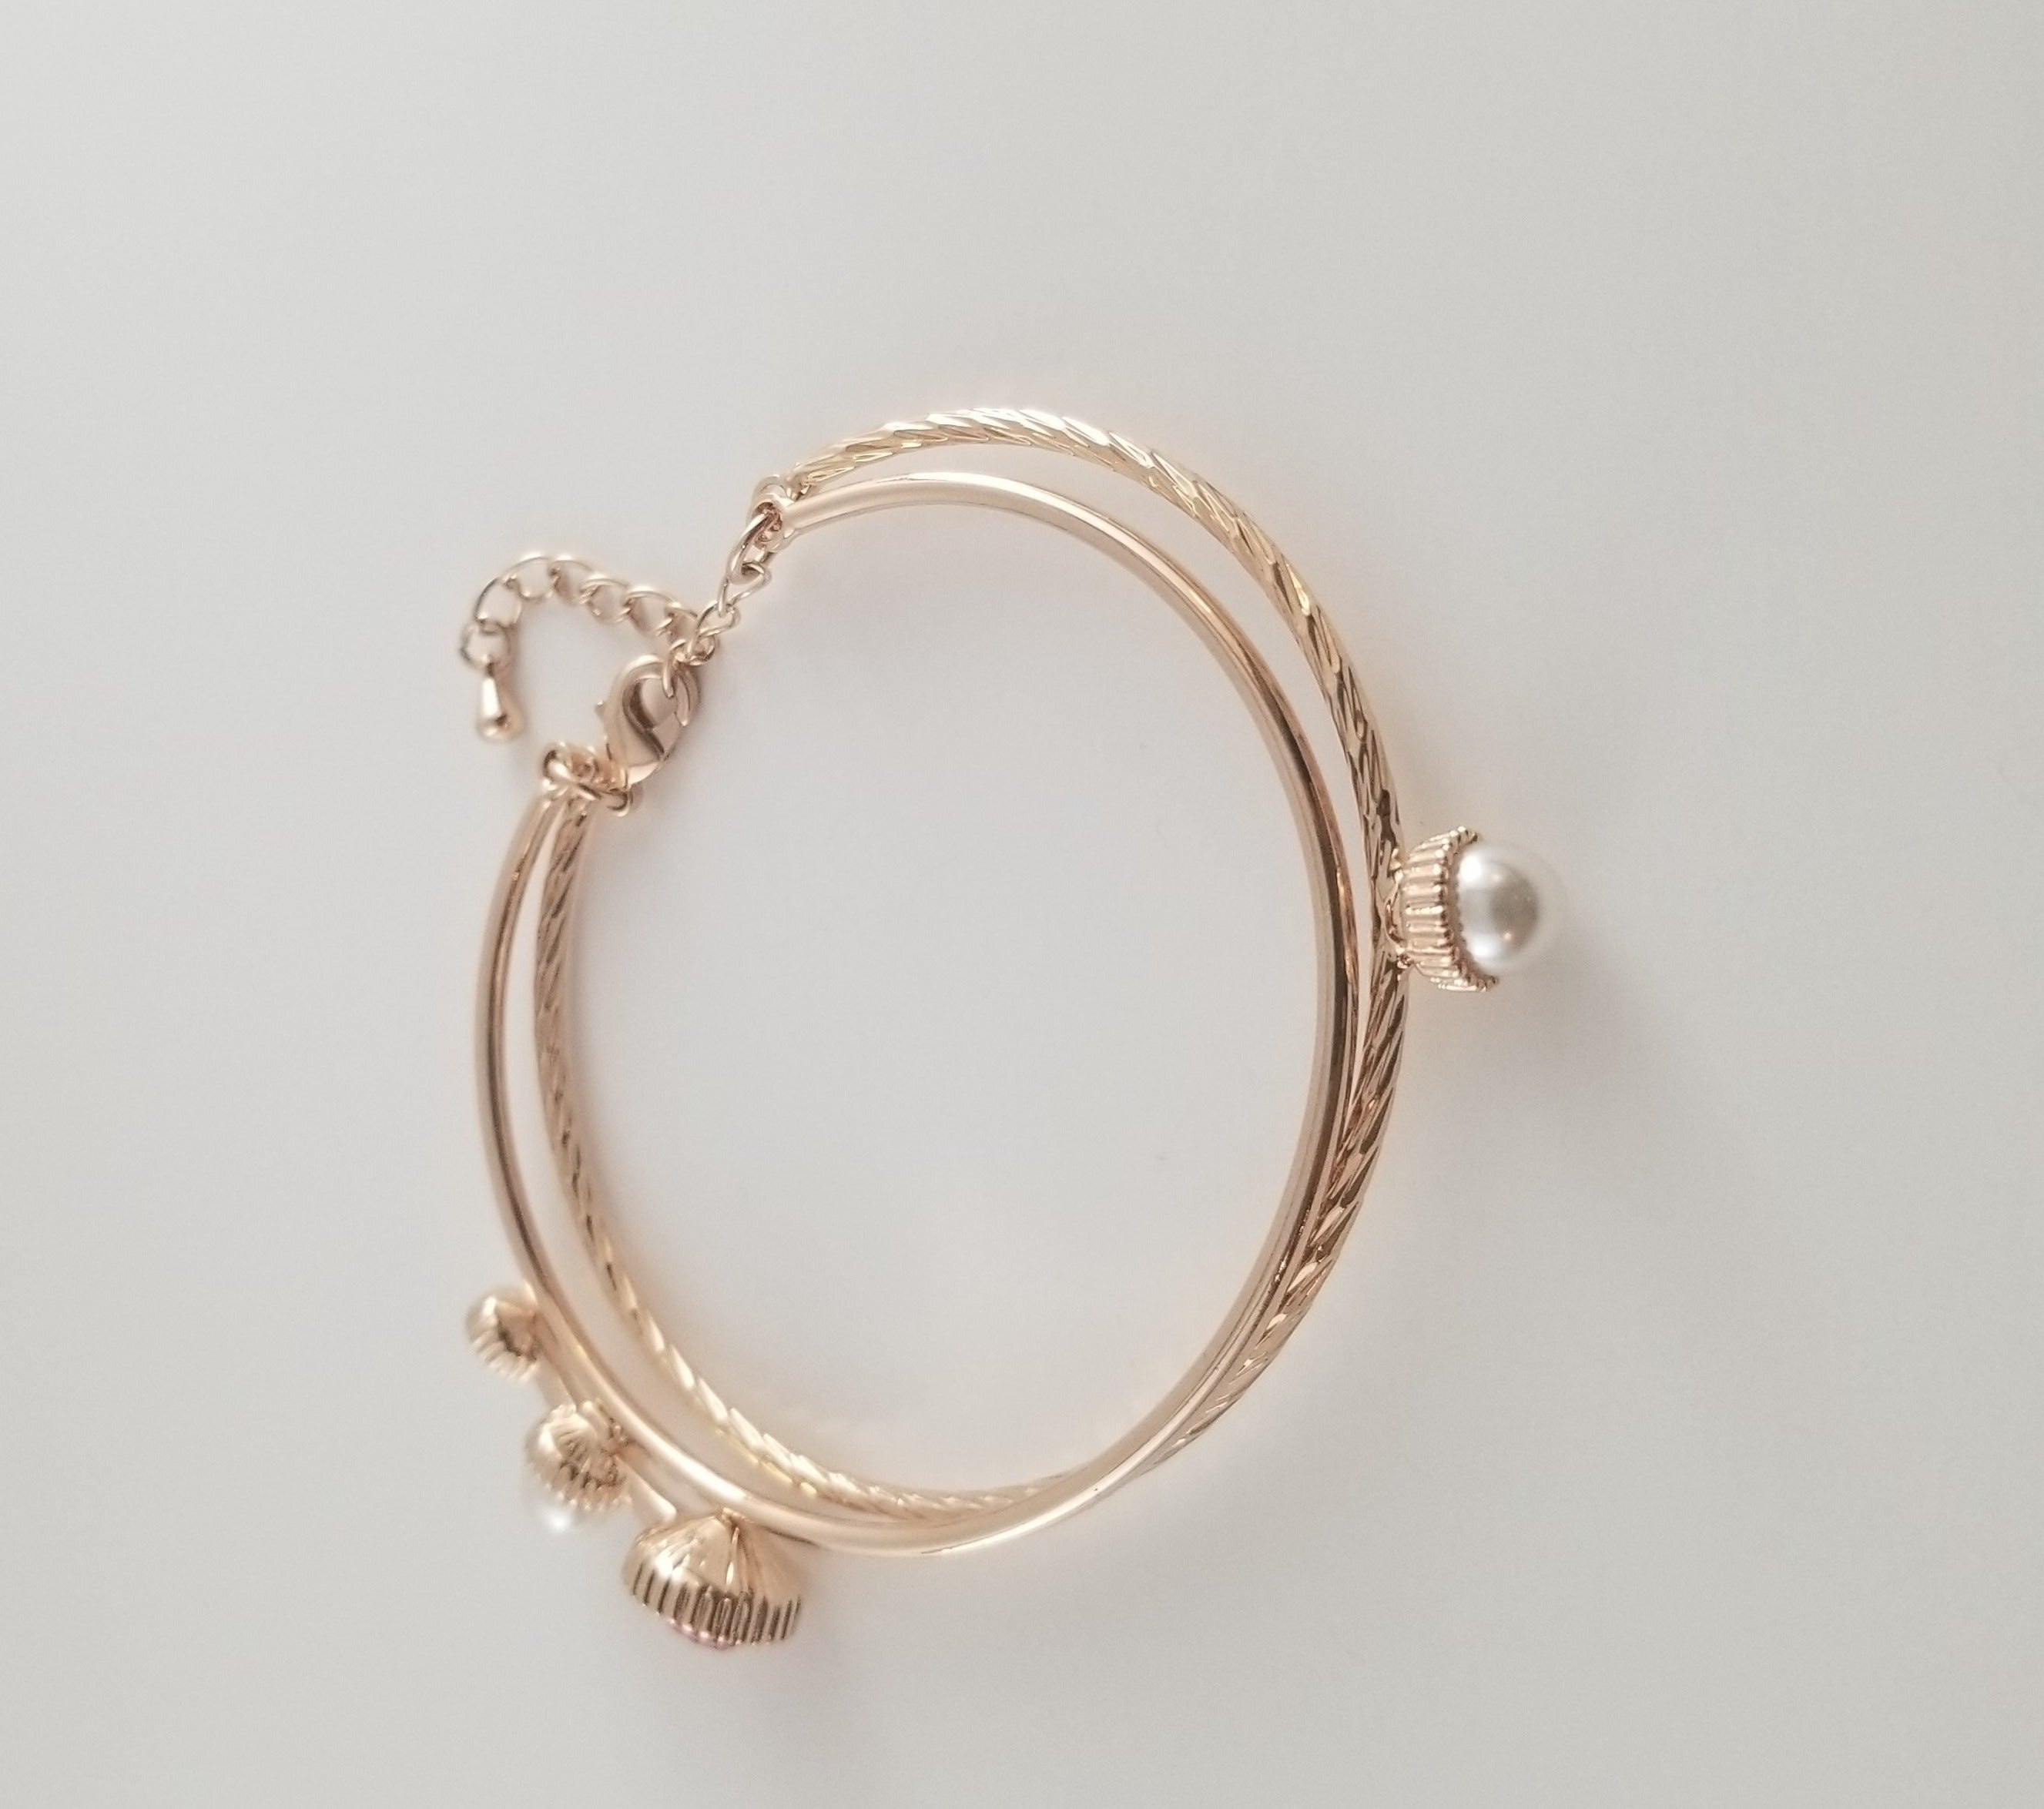 Gem and Pearl Double Bracelet